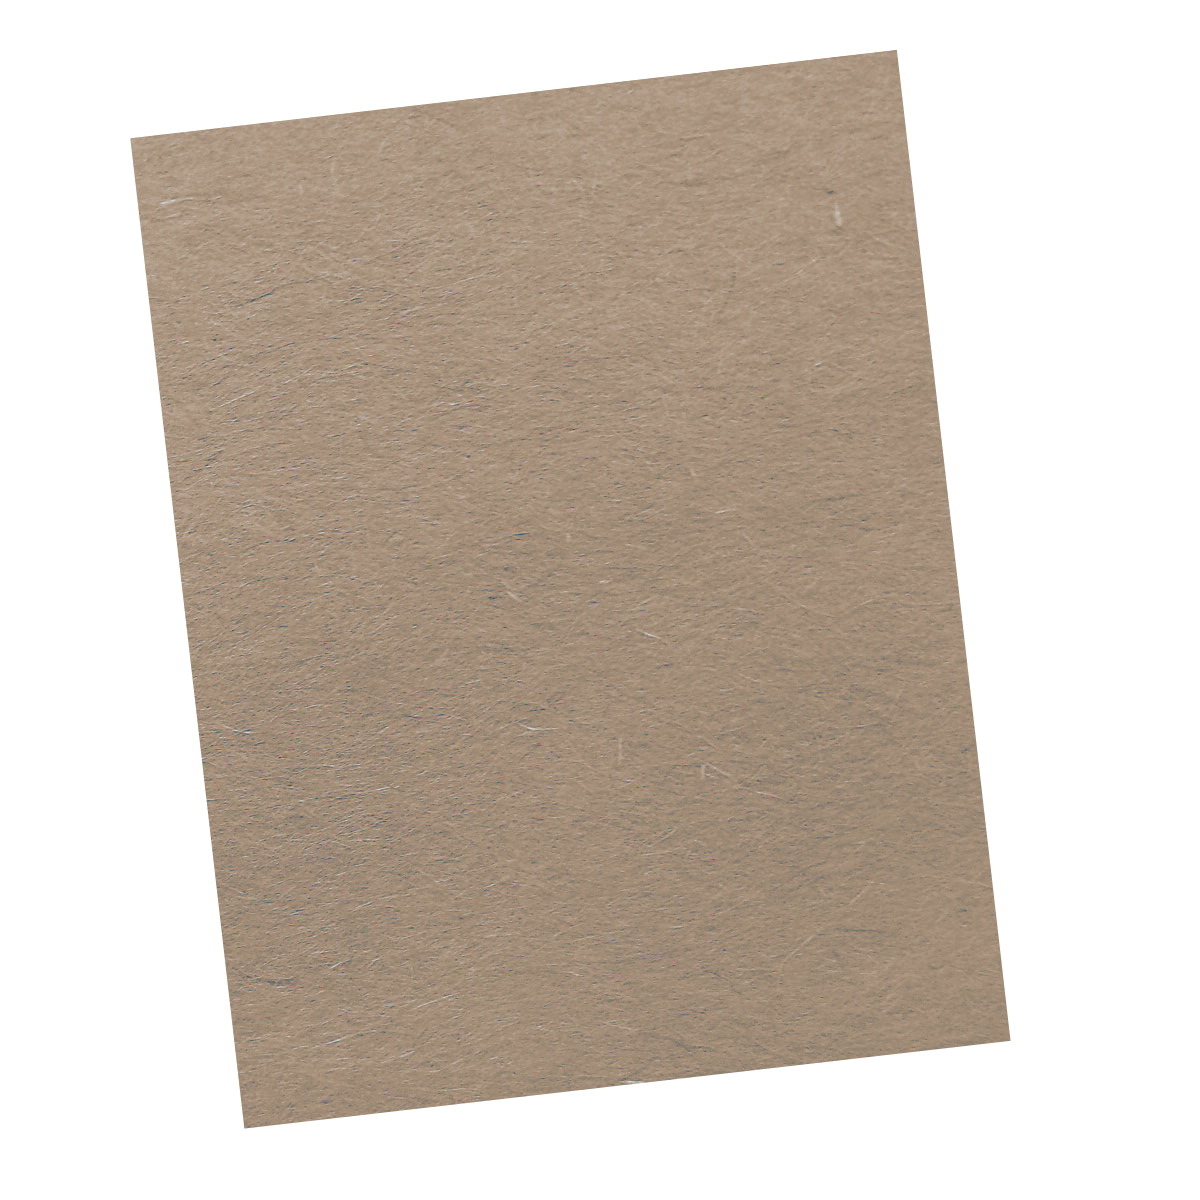 School Smart Multi-Purpose Chipboard, 19 x 26 Inches, Gray, 40 Pt, Pack of 10